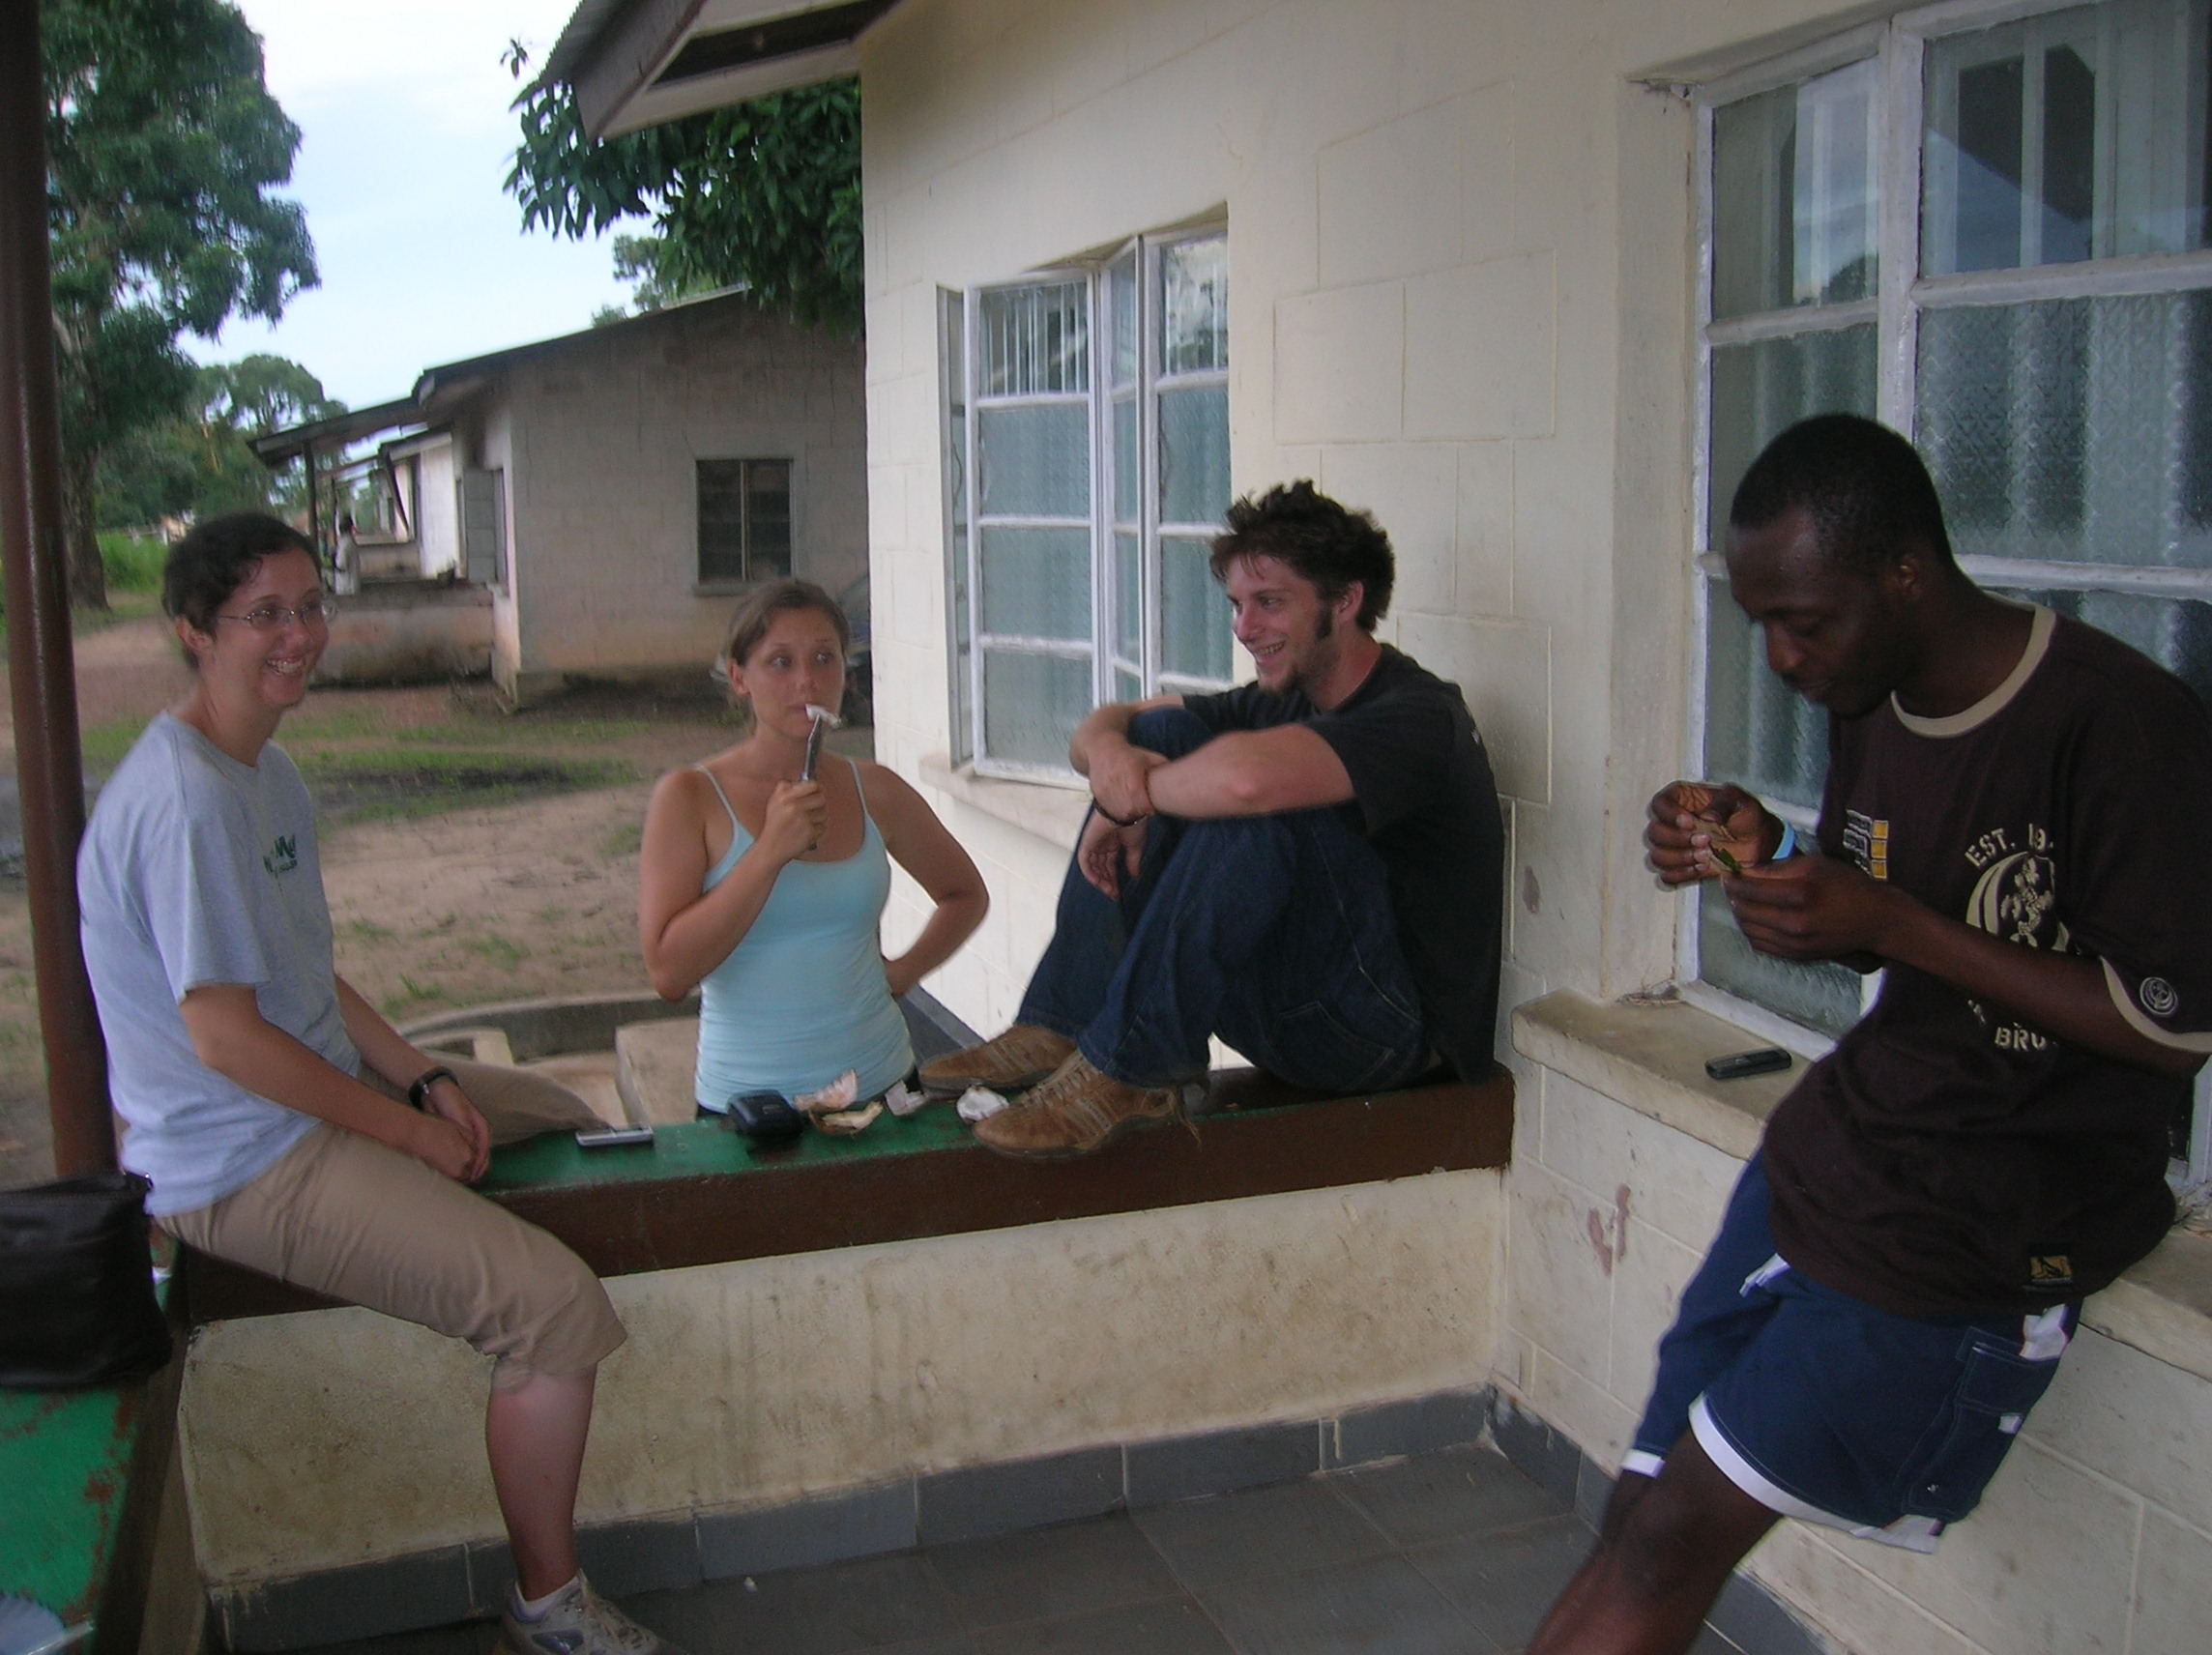 Katie, Katie, Jamie and Carlos [making a coconut whistle]